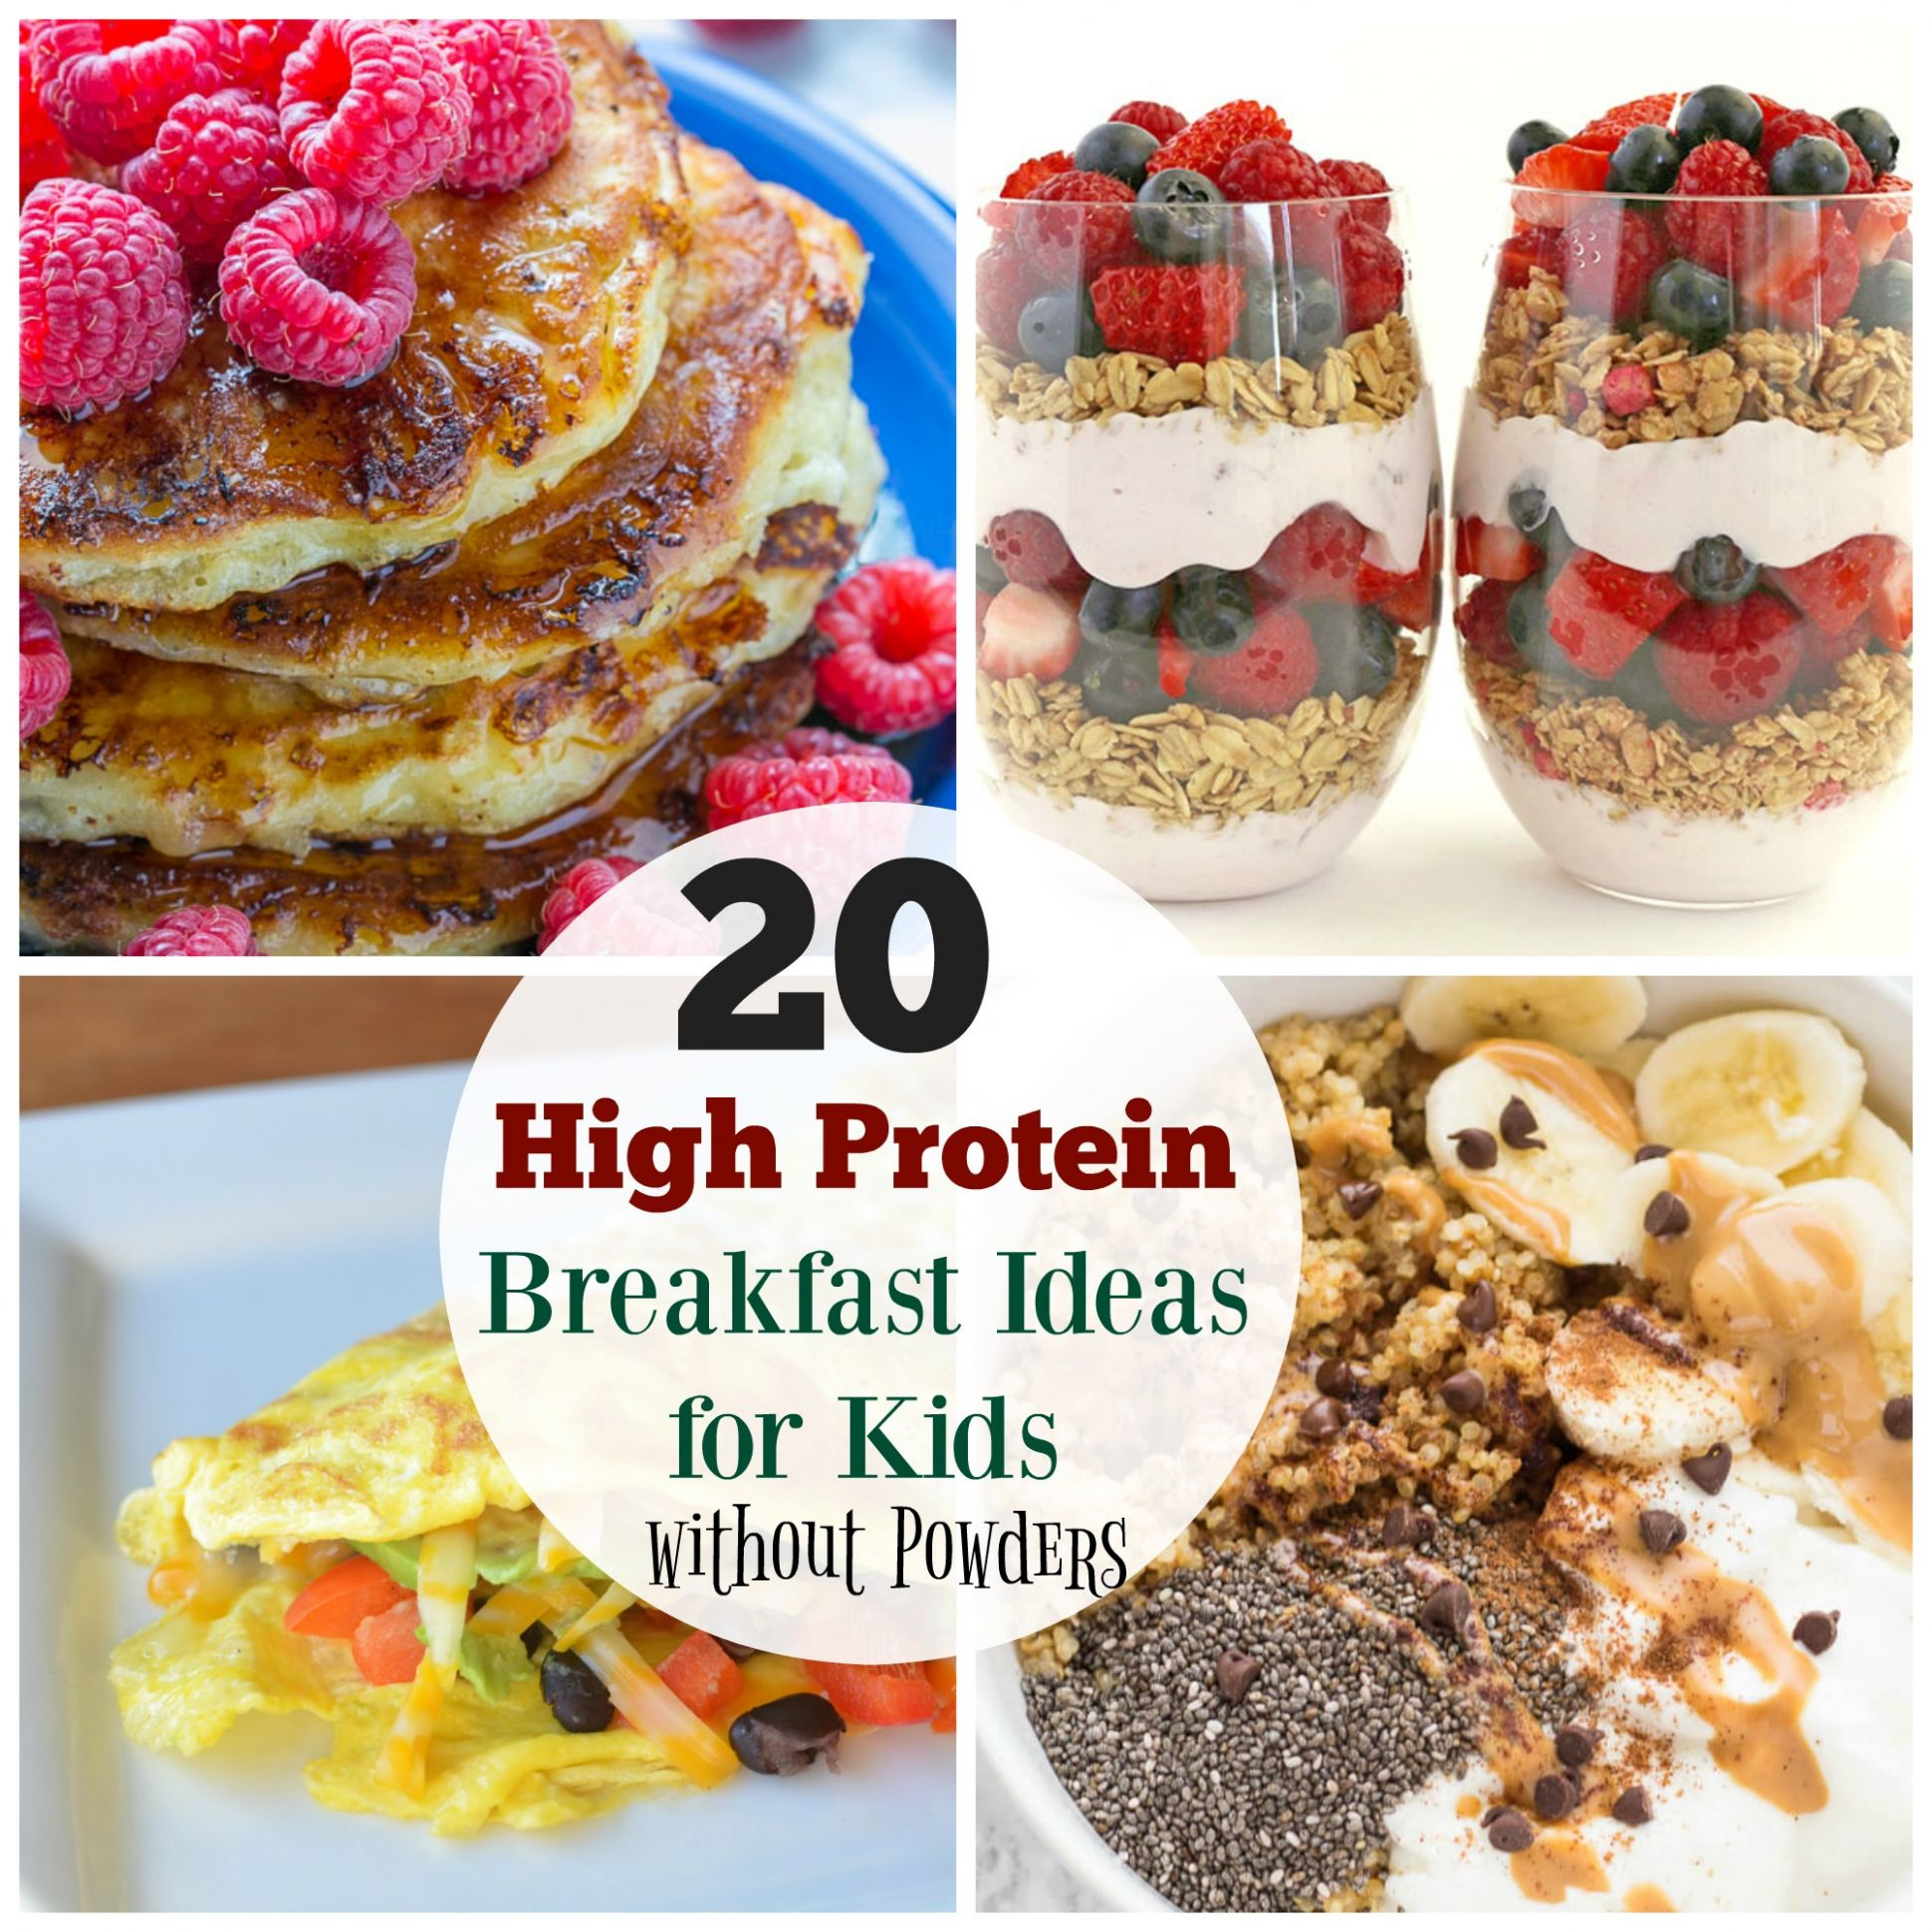 11 High Protein Breakfast Ideas for Kids - The Organized Mom - Breakfast Recipes Protein